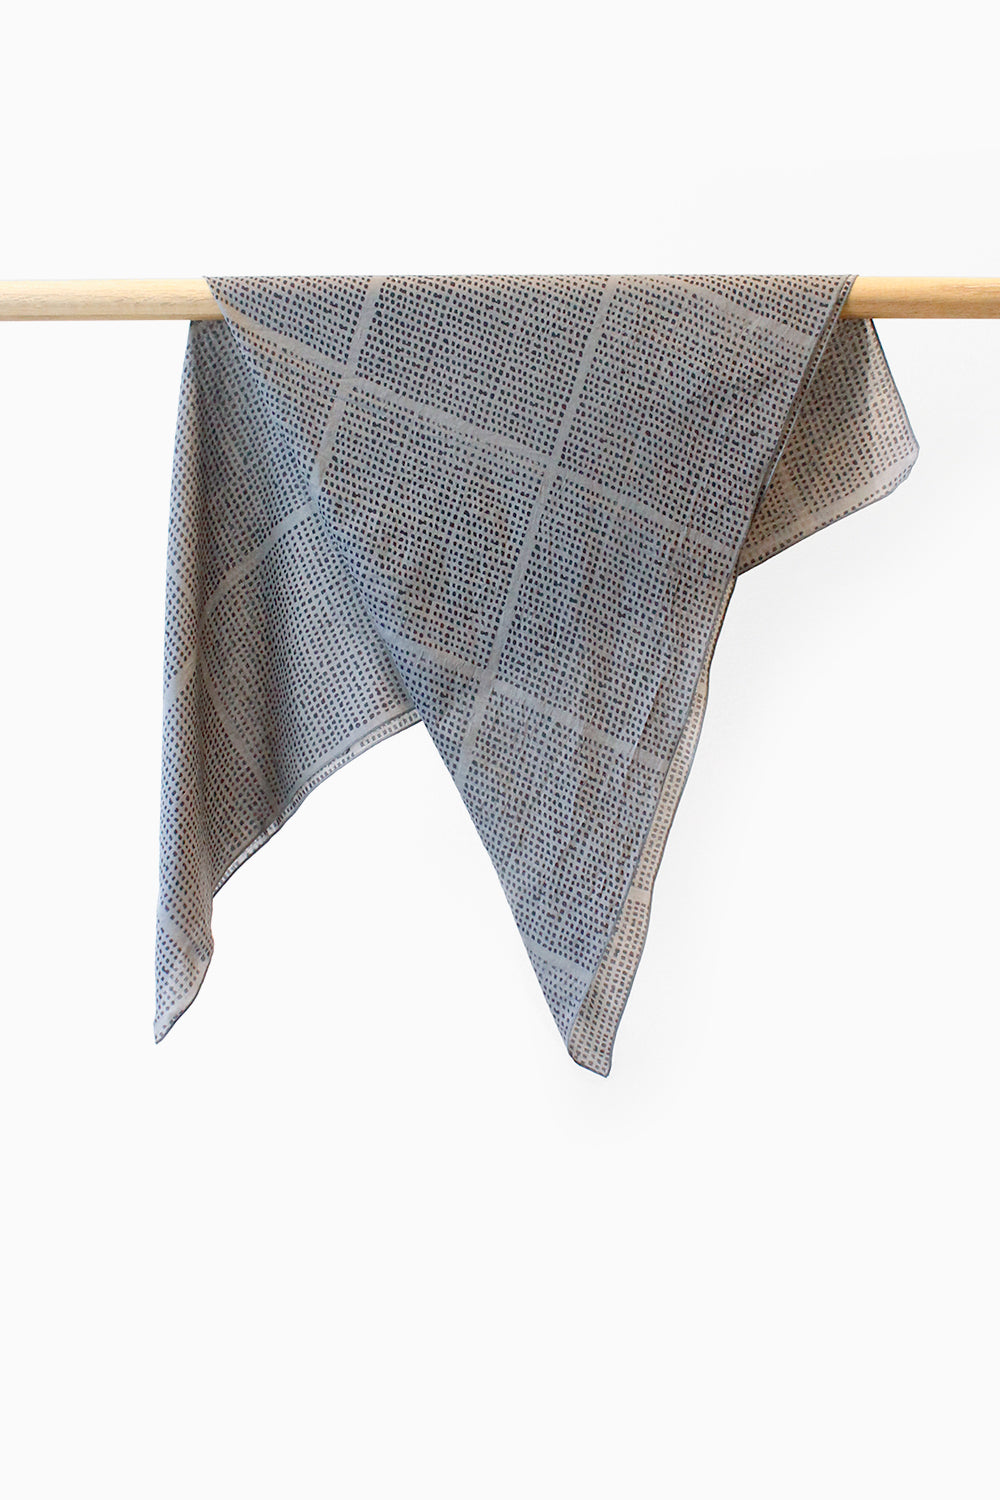 Seed Check Grey Scarf